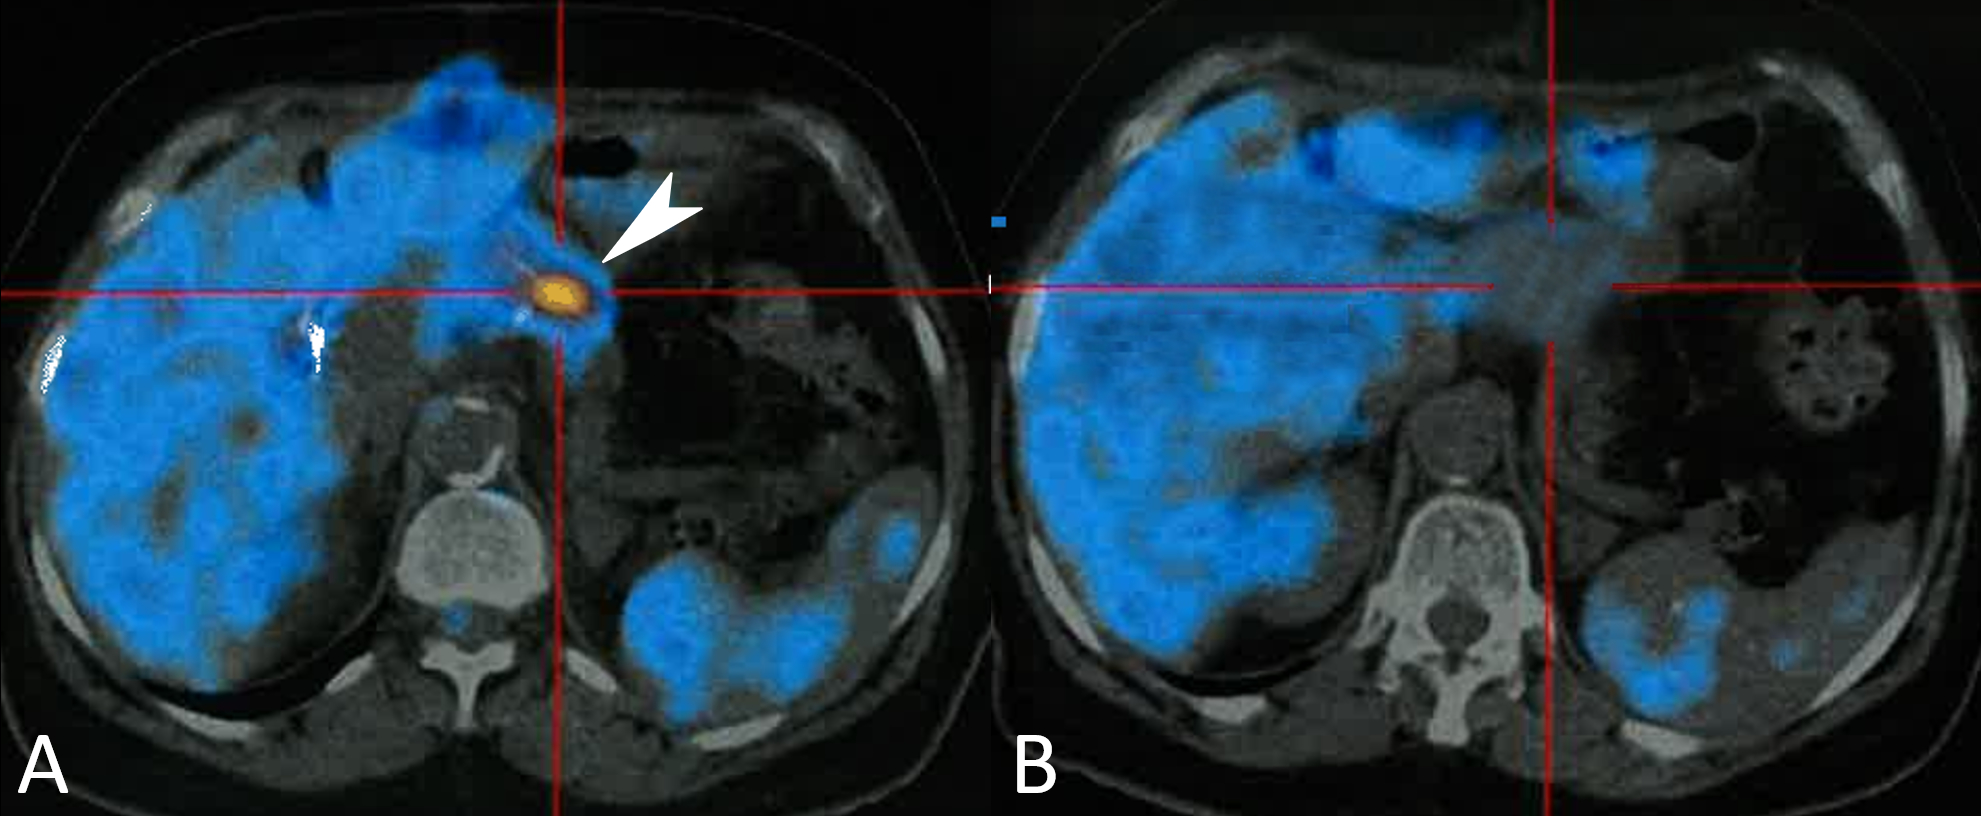 PET scan. A – Nodular hyperfixation area of FDG on the remaining parenchyma (white arrow); B – At 1 year and 4 months follow-up, the PET-CT scan showing no signs of disease relapse.